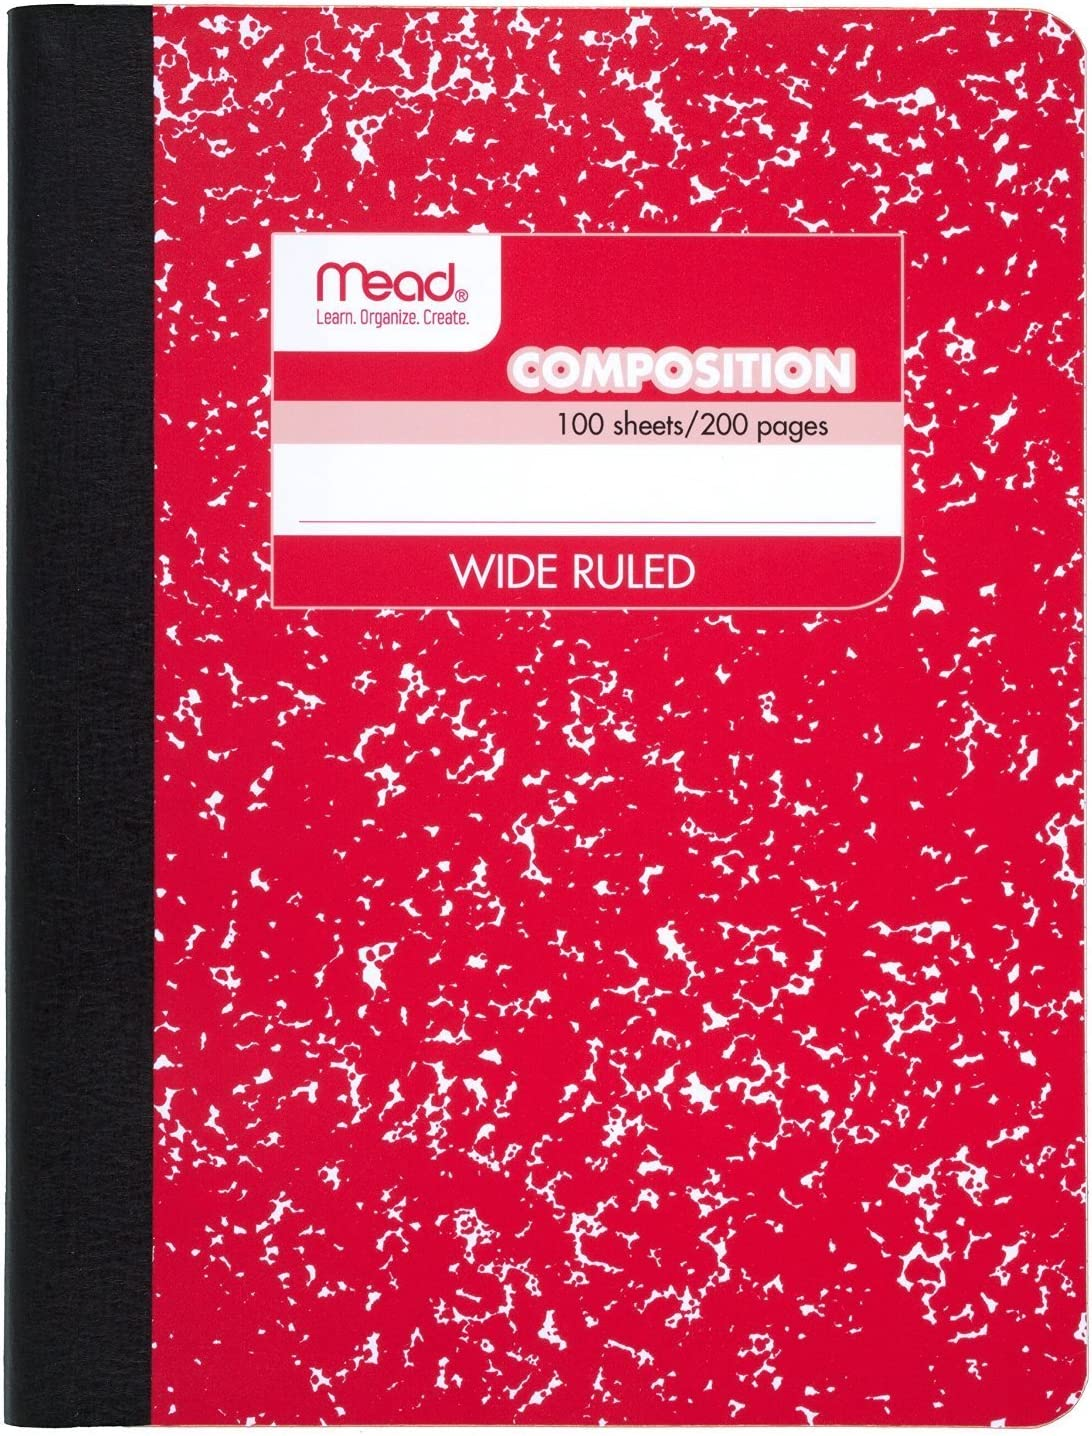 70 Sheets 140 Pages Wide Ruled 9-3//4 x 7-1//2 Fashion Design Green Mead Composition Notebook